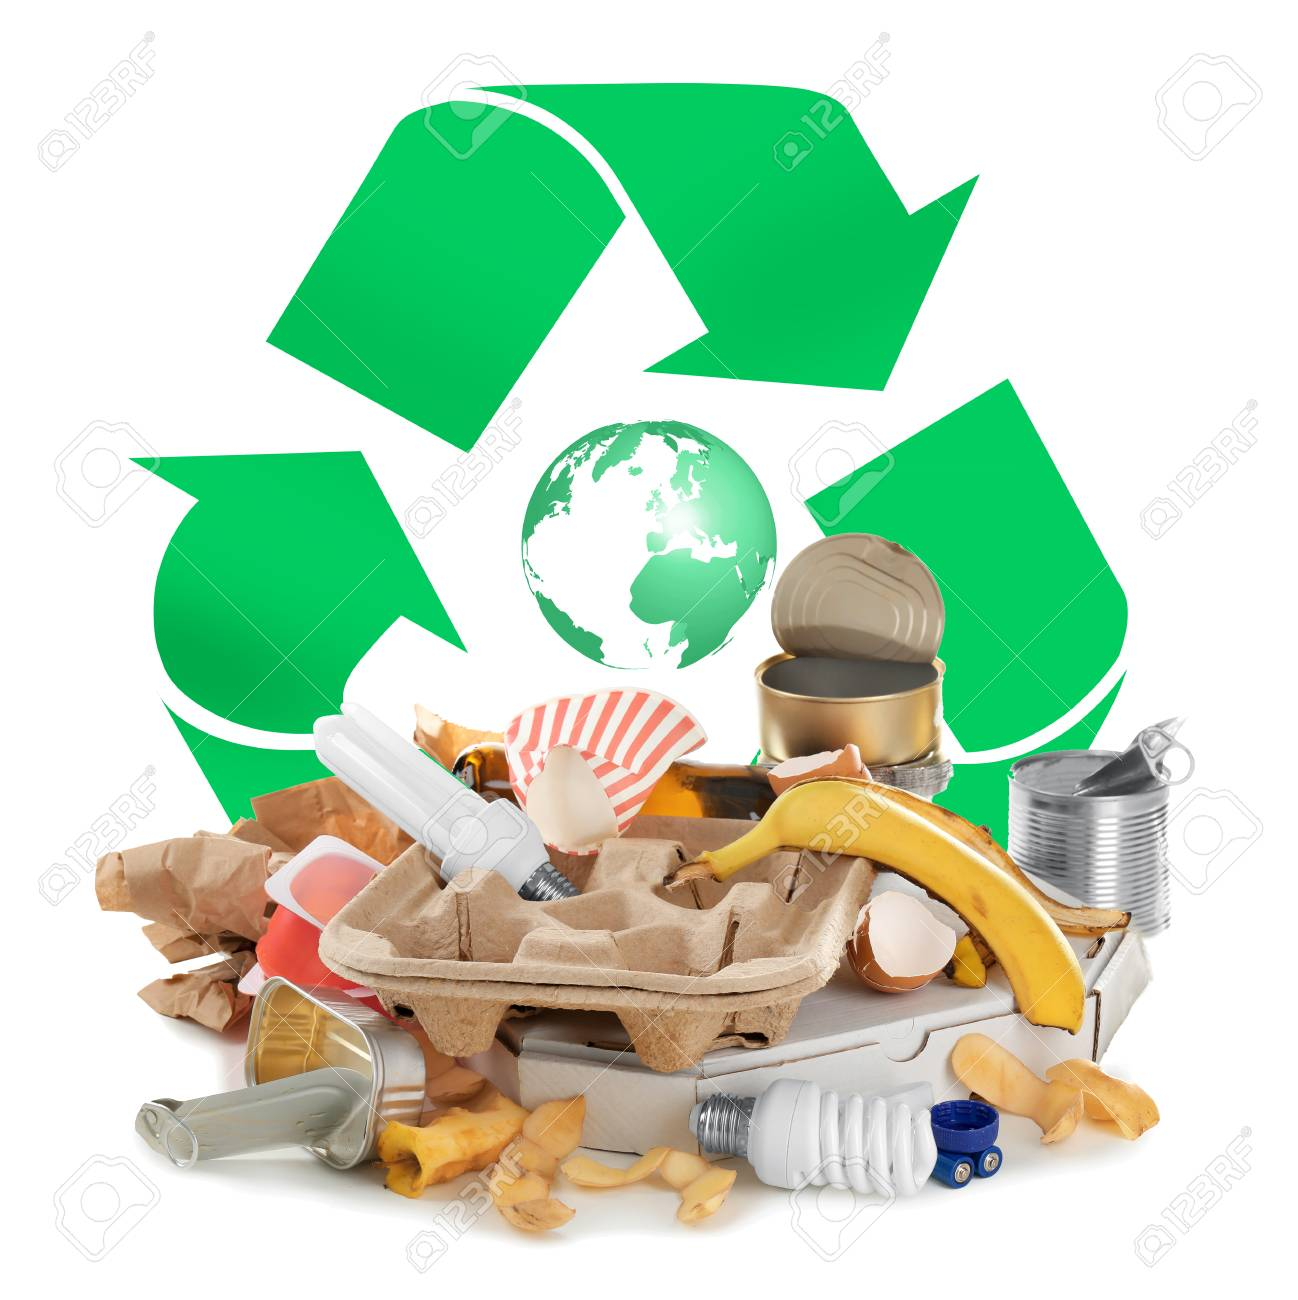 Different types of garbage and recycling sign on white background - 90739338